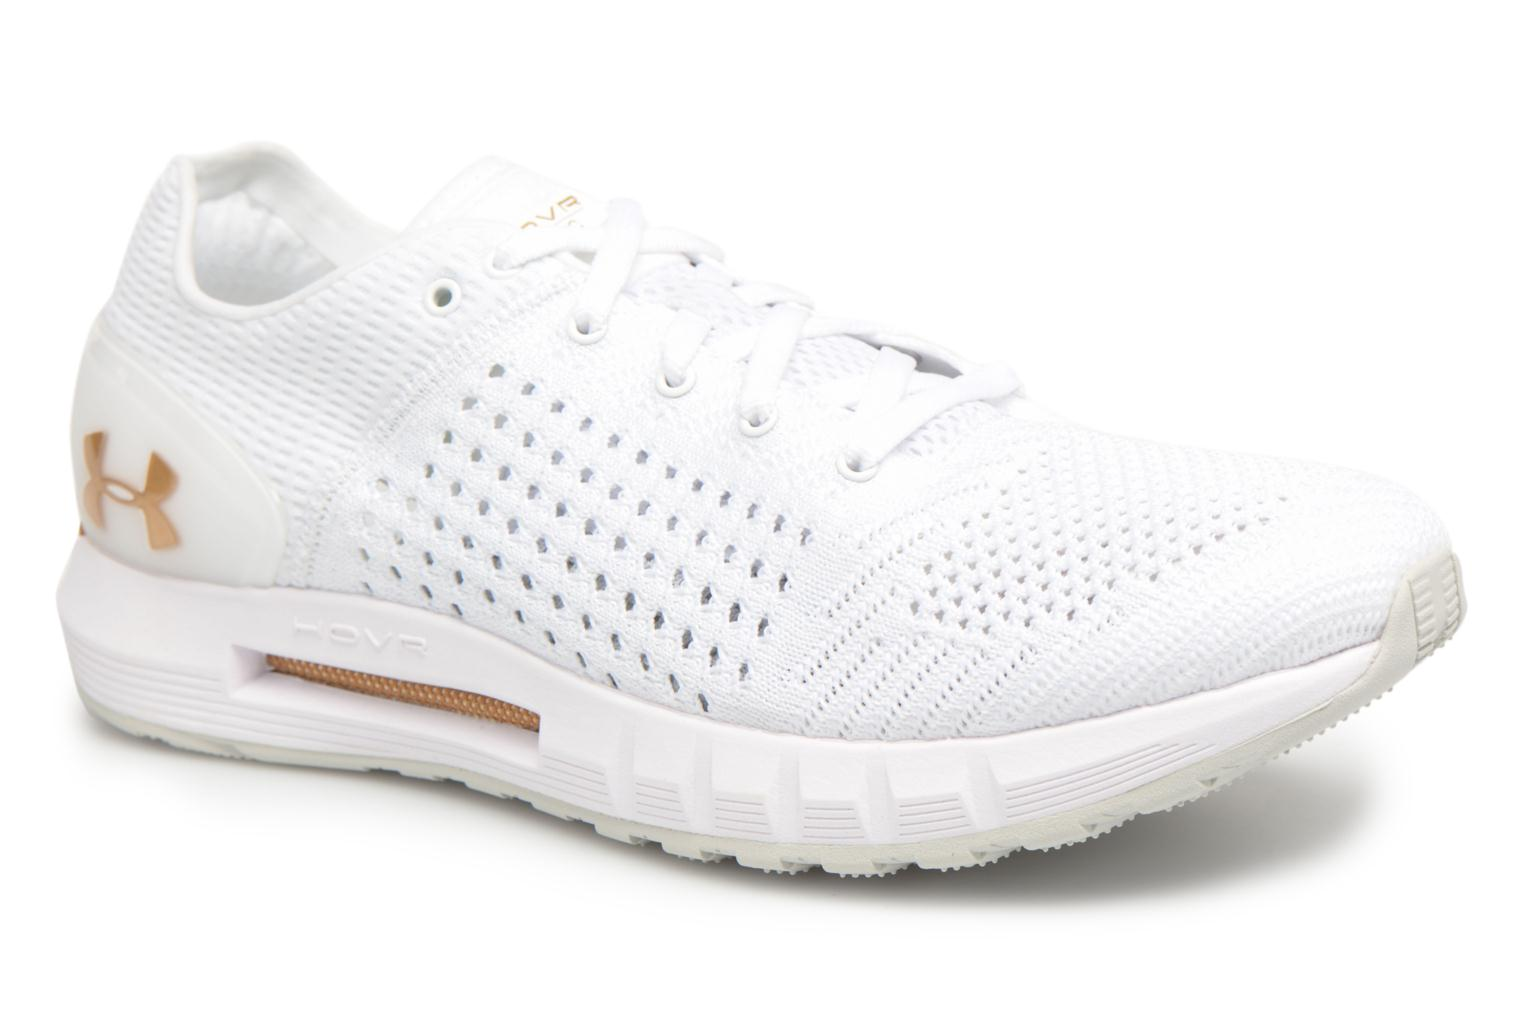 Marques Chaussure homme Under Armour homme UA HOVR Sonic NC White/Black/Met Iron